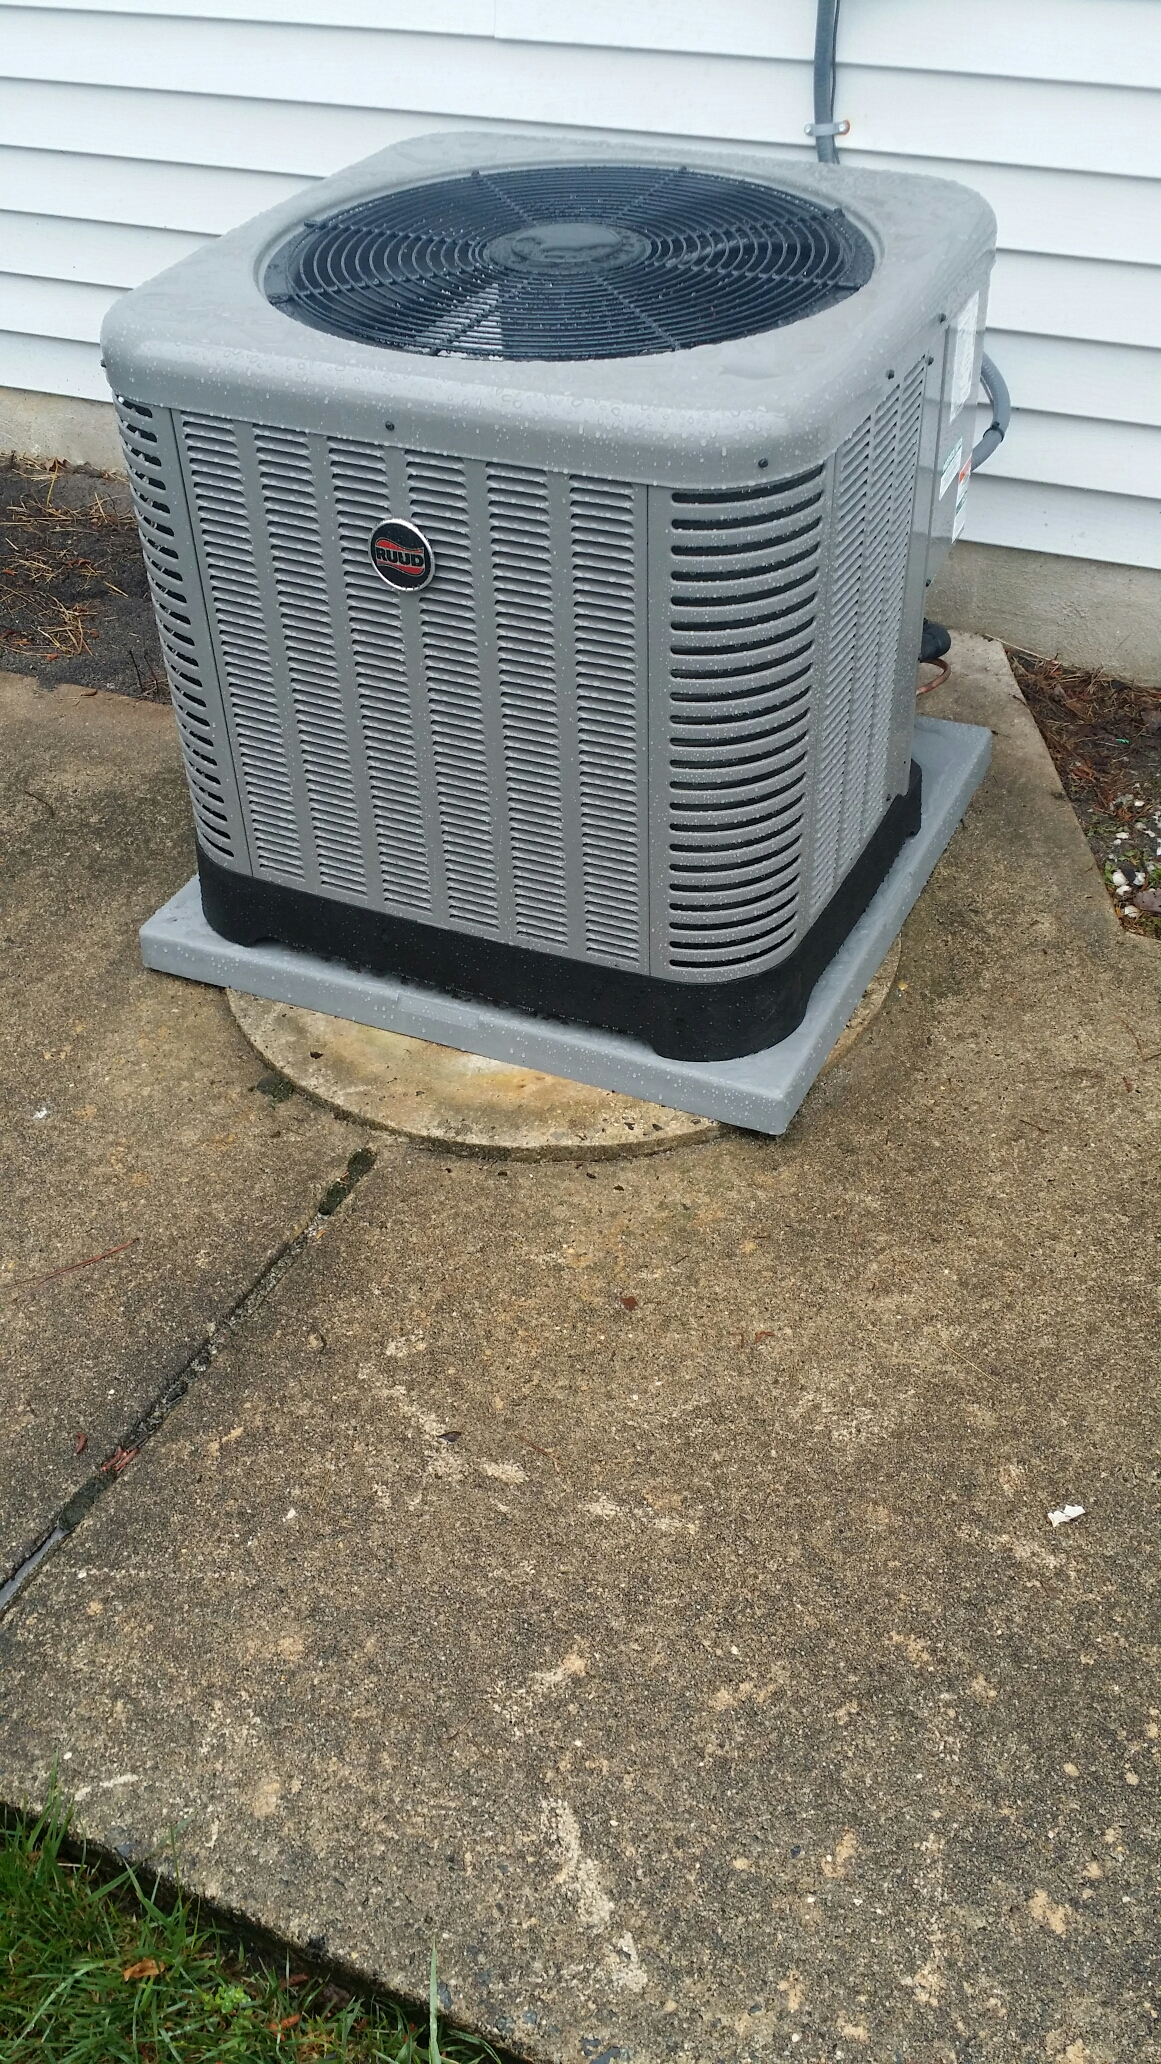 #816F4A Furnace Repair And Air Conditioner Repair In Toms River NJ 2017 13902 Ruud Central Air Conditioner photo with 1161x2064 px on helpvideos.info - Air Conditioners, Air Coolers and more